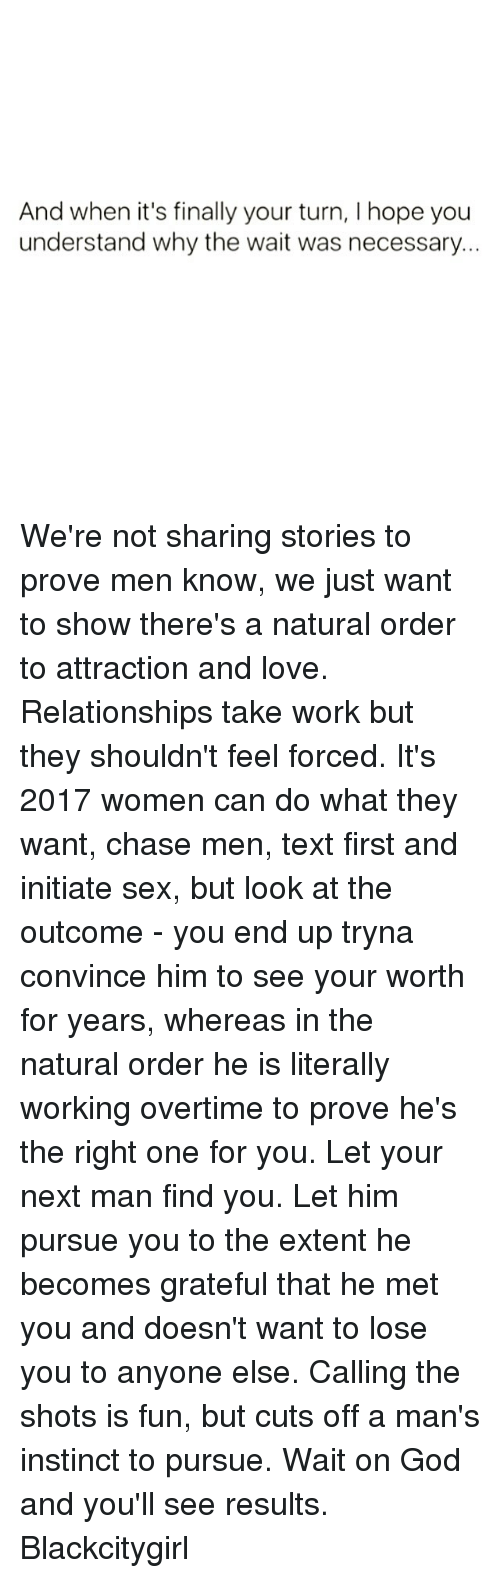 Not Sharing: And when it's finally your turn, l hope you  understand why the wait was necessary. We're not sharing stories to prove men know, we just want to show there's a natural order to attraction and love. Relationships take work but they shouldn't feel forced. It's 2017 women can do what they want, chase men, text first and initiate sex, but look at the outcome - you end up tryna convince him to see your worth for years, whereas in the natural order he is literally working overtime to prove he's the right one for you. Let your next man find you. Let him pursue you to the extent he becomes grateful that he met you and doesn't want to lose you to anyone else. Calling the shots is fun, but cuts off a man's instinct to pursue. Wait on God and you'll see results. Blackcitygirl